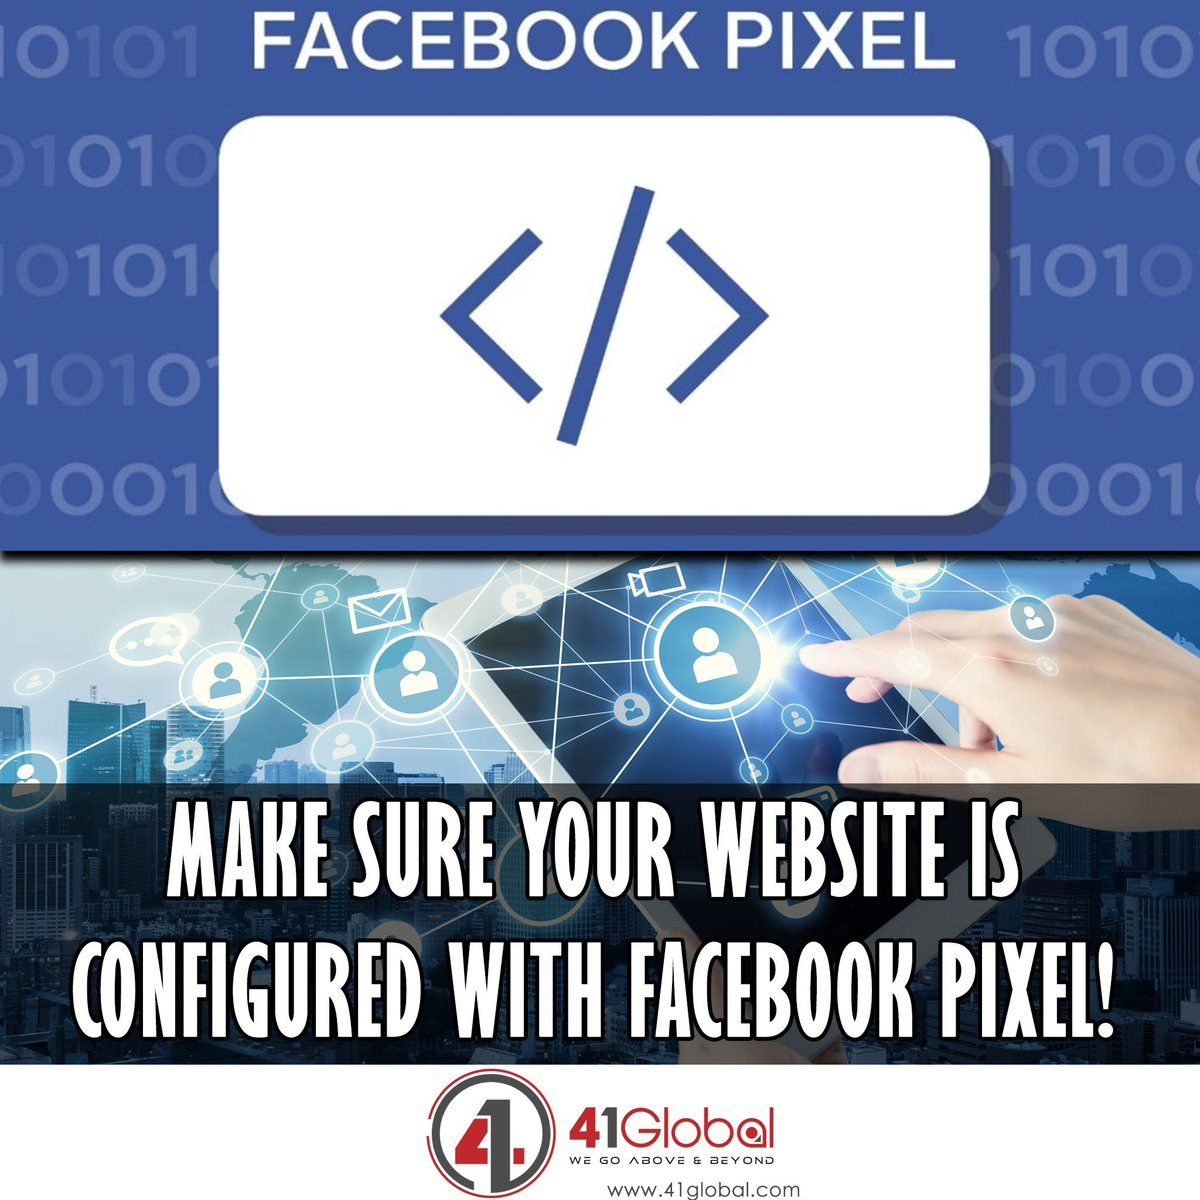 Have you added the #Facbook Pixel to your website yet?  Adding the pixel to your website allows you to easily track visitors that visit your website and also retarget those same users for future ads.  DM us today to confirm your pixel is setup correctly. 😀😉 #41Global #marketing